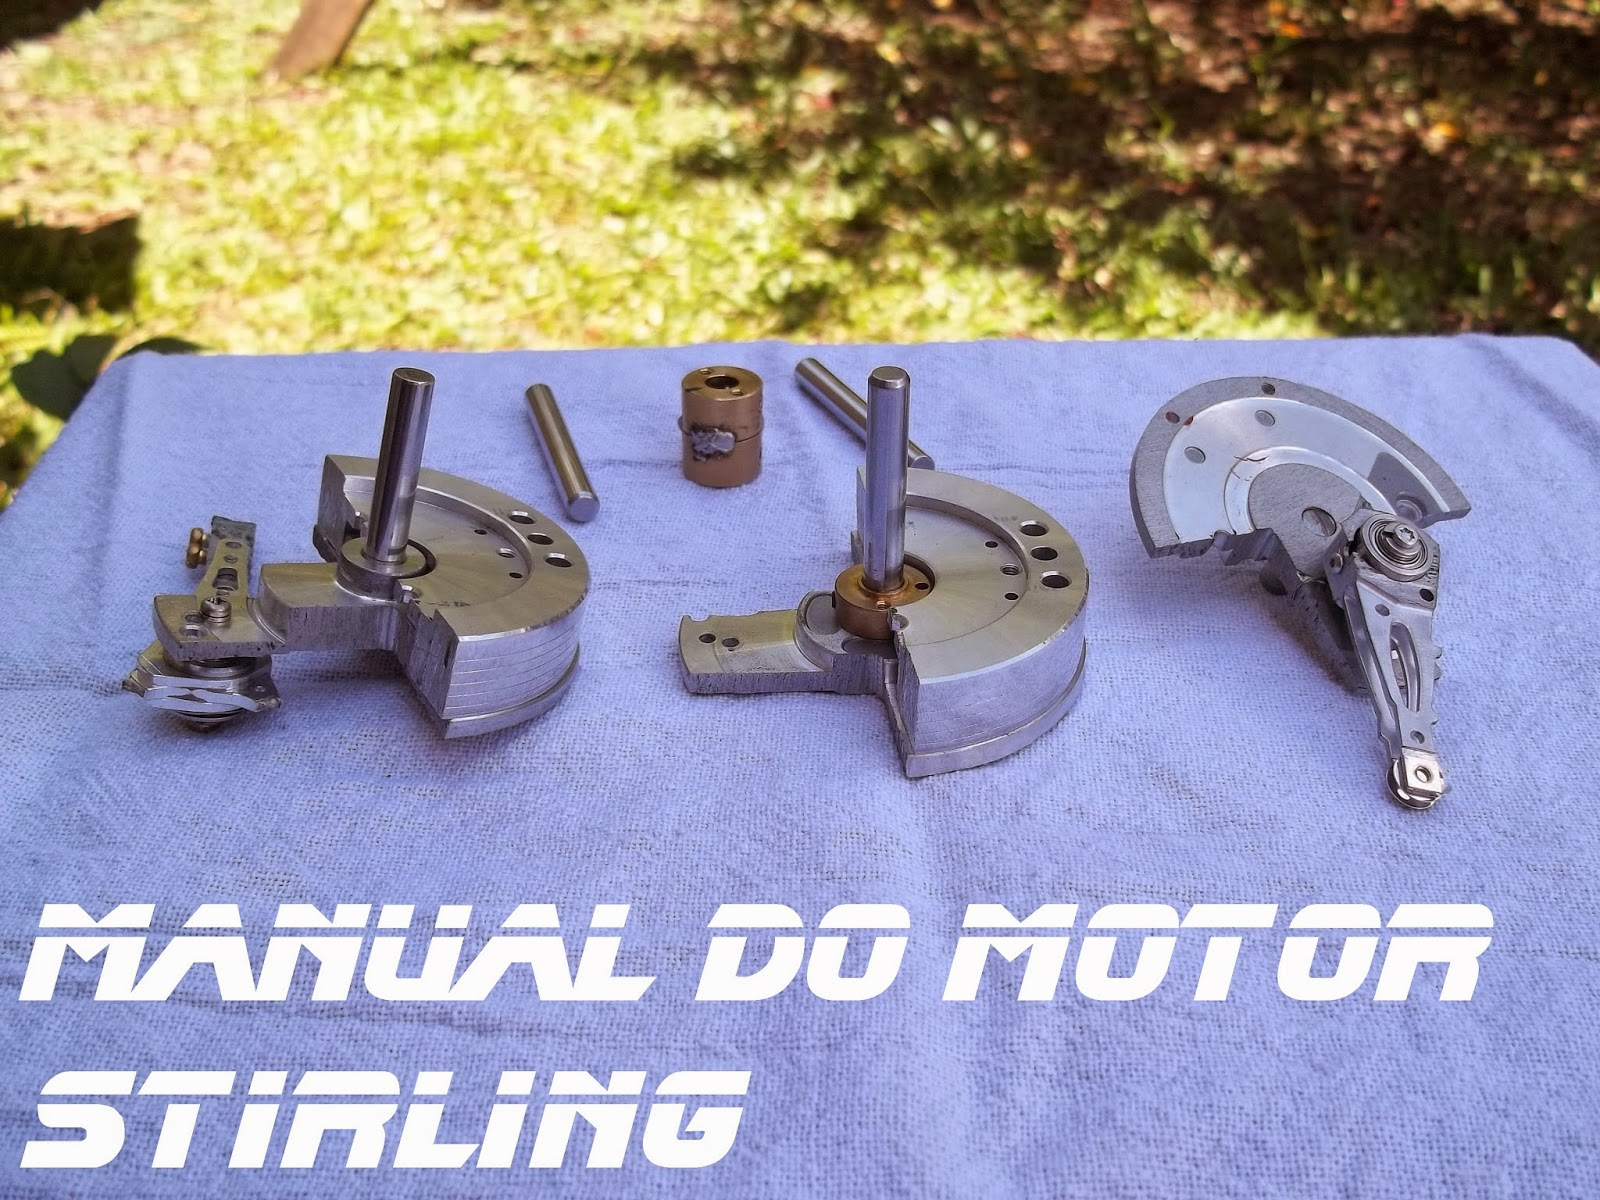 Kit a para a montagem do virabrequim, Manual do motor Stirling